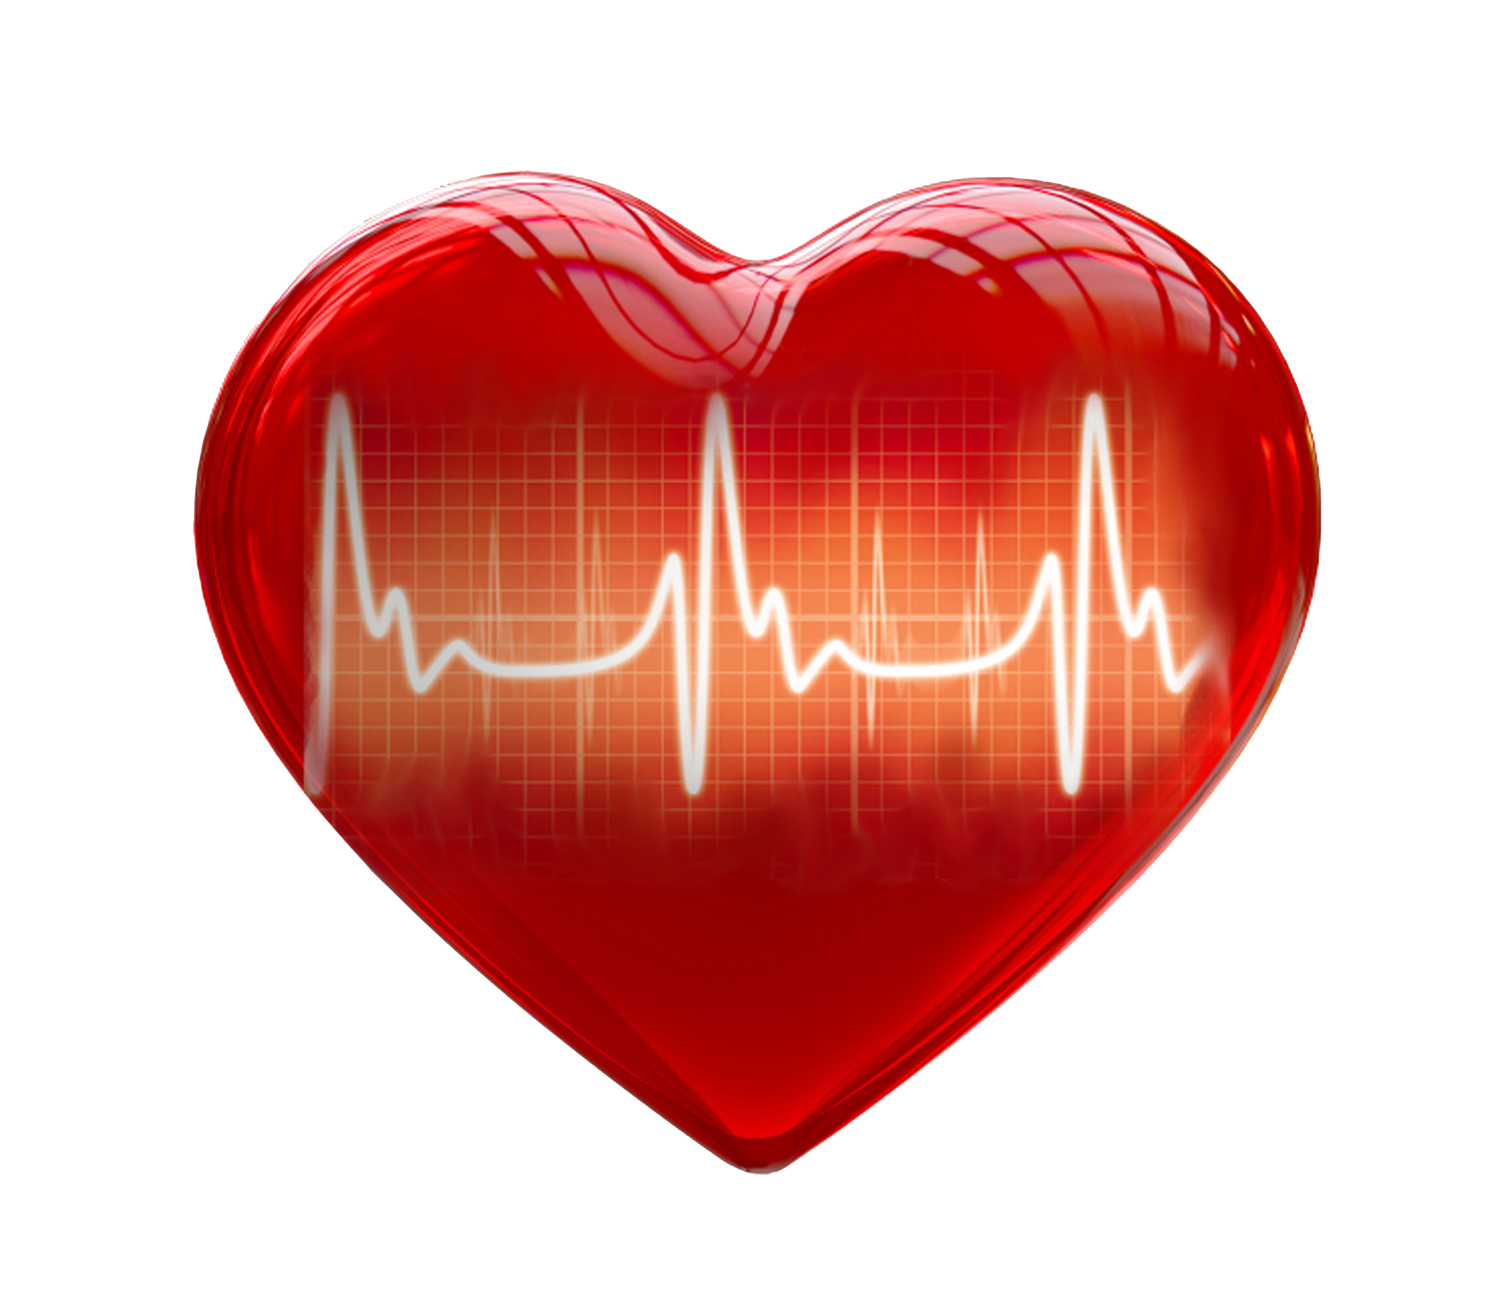 Clipart heart health graphic free 28+ Collection of Fast Heartbeat Clipart | High quality, free ... graphic free